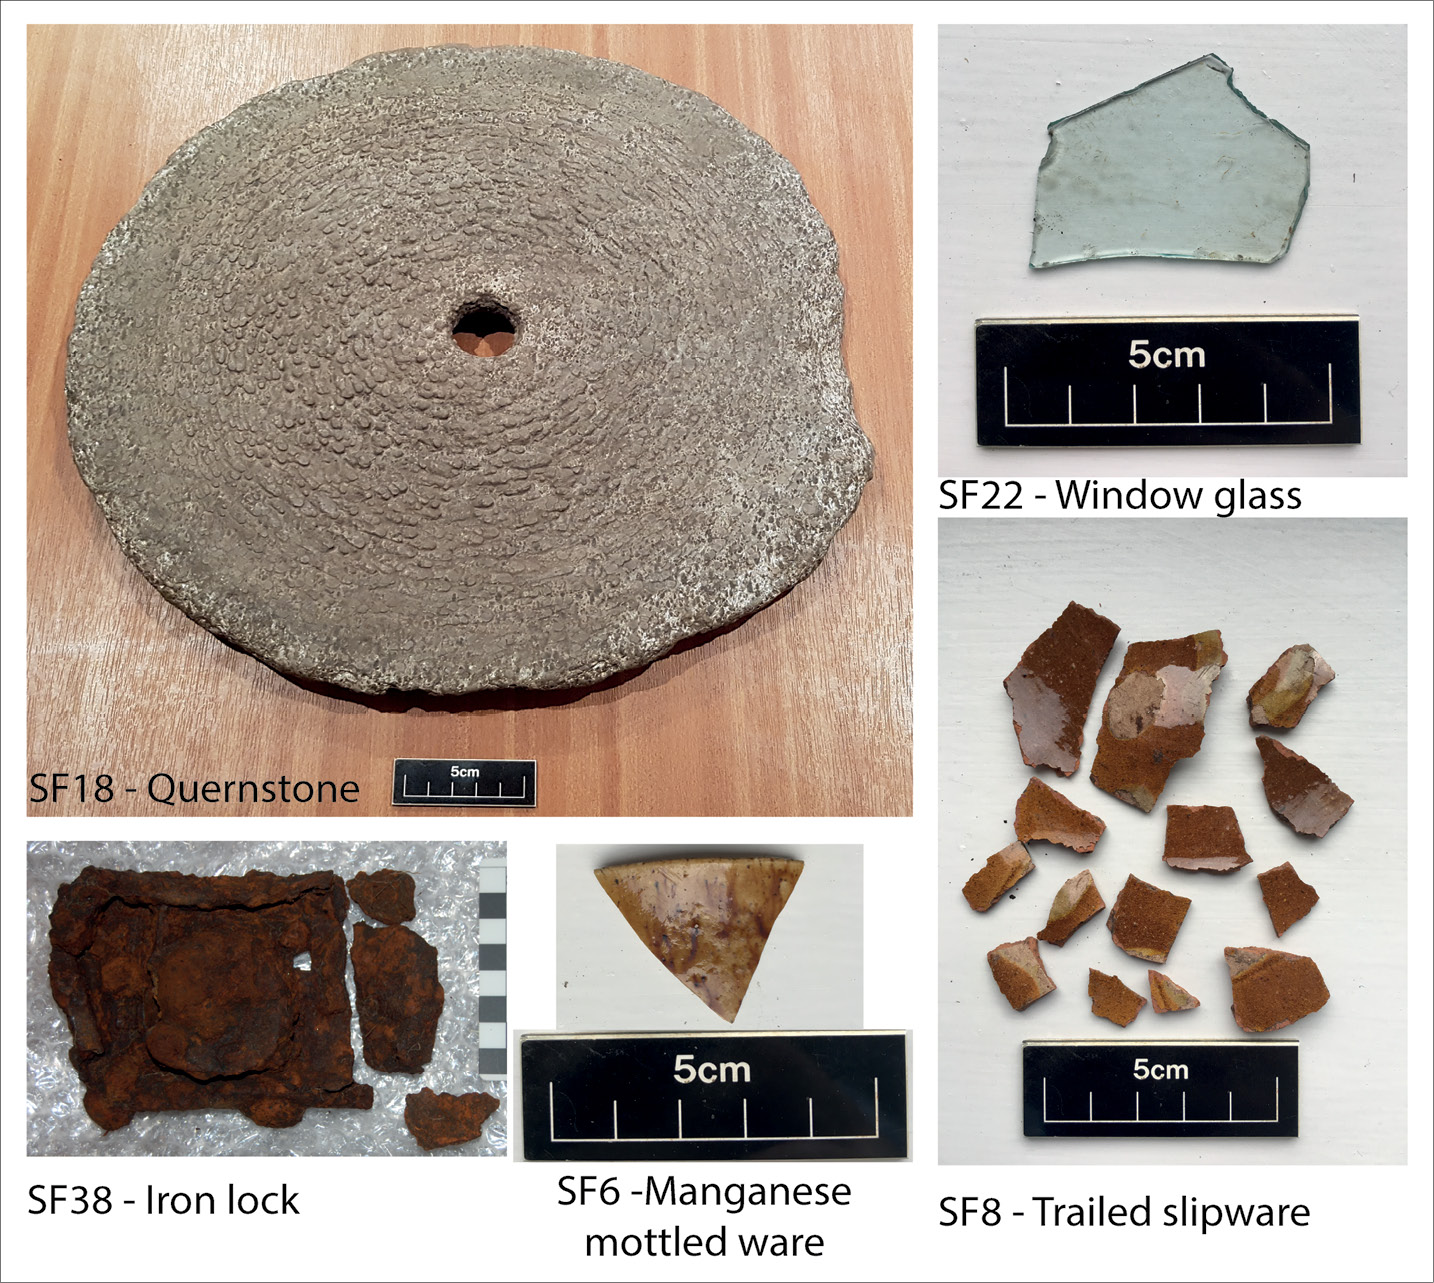 LEFT Some of the artefacts recovered from Structure 1: a quernstone, an iron lock, and fragments of pottery and window glass.